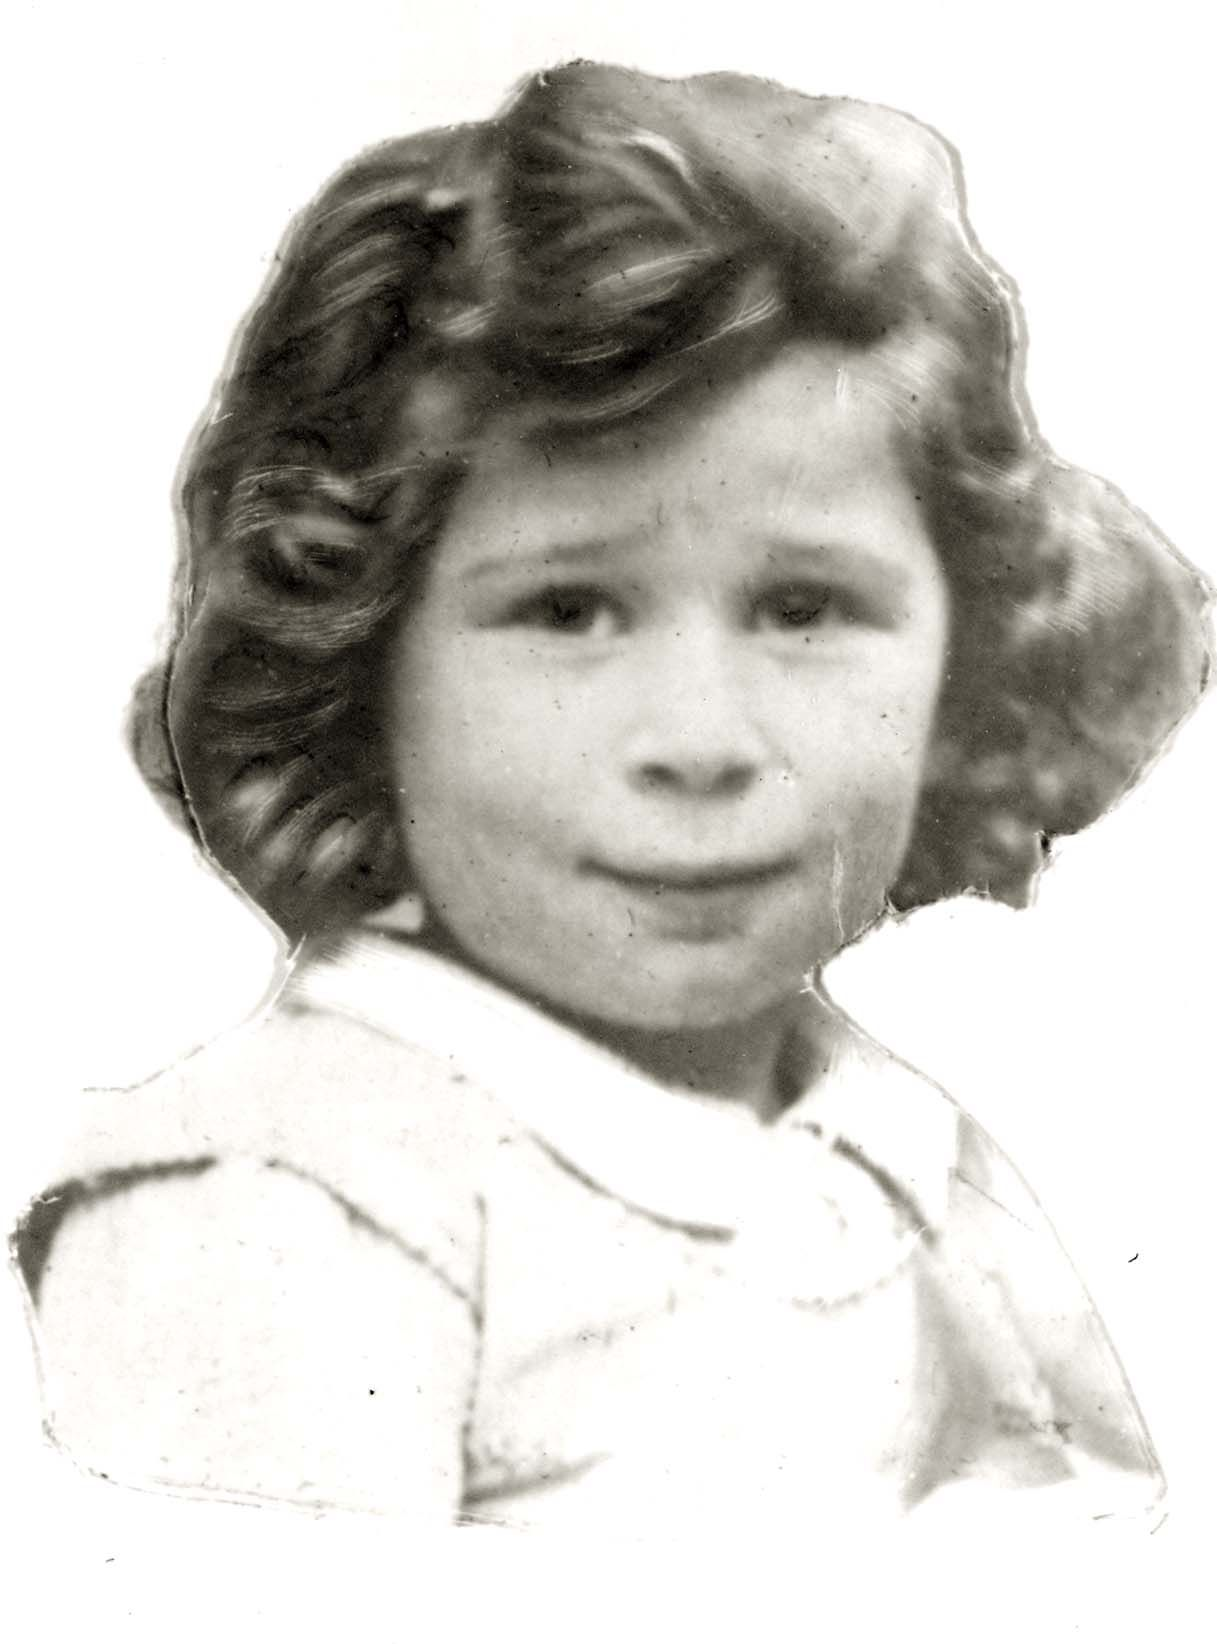 Portrait taken in Argenteuil, France of Evelyne Oliffson with a shy expression at the camera. Evelyne murdered in Auschwitz in 1944 at age 7.